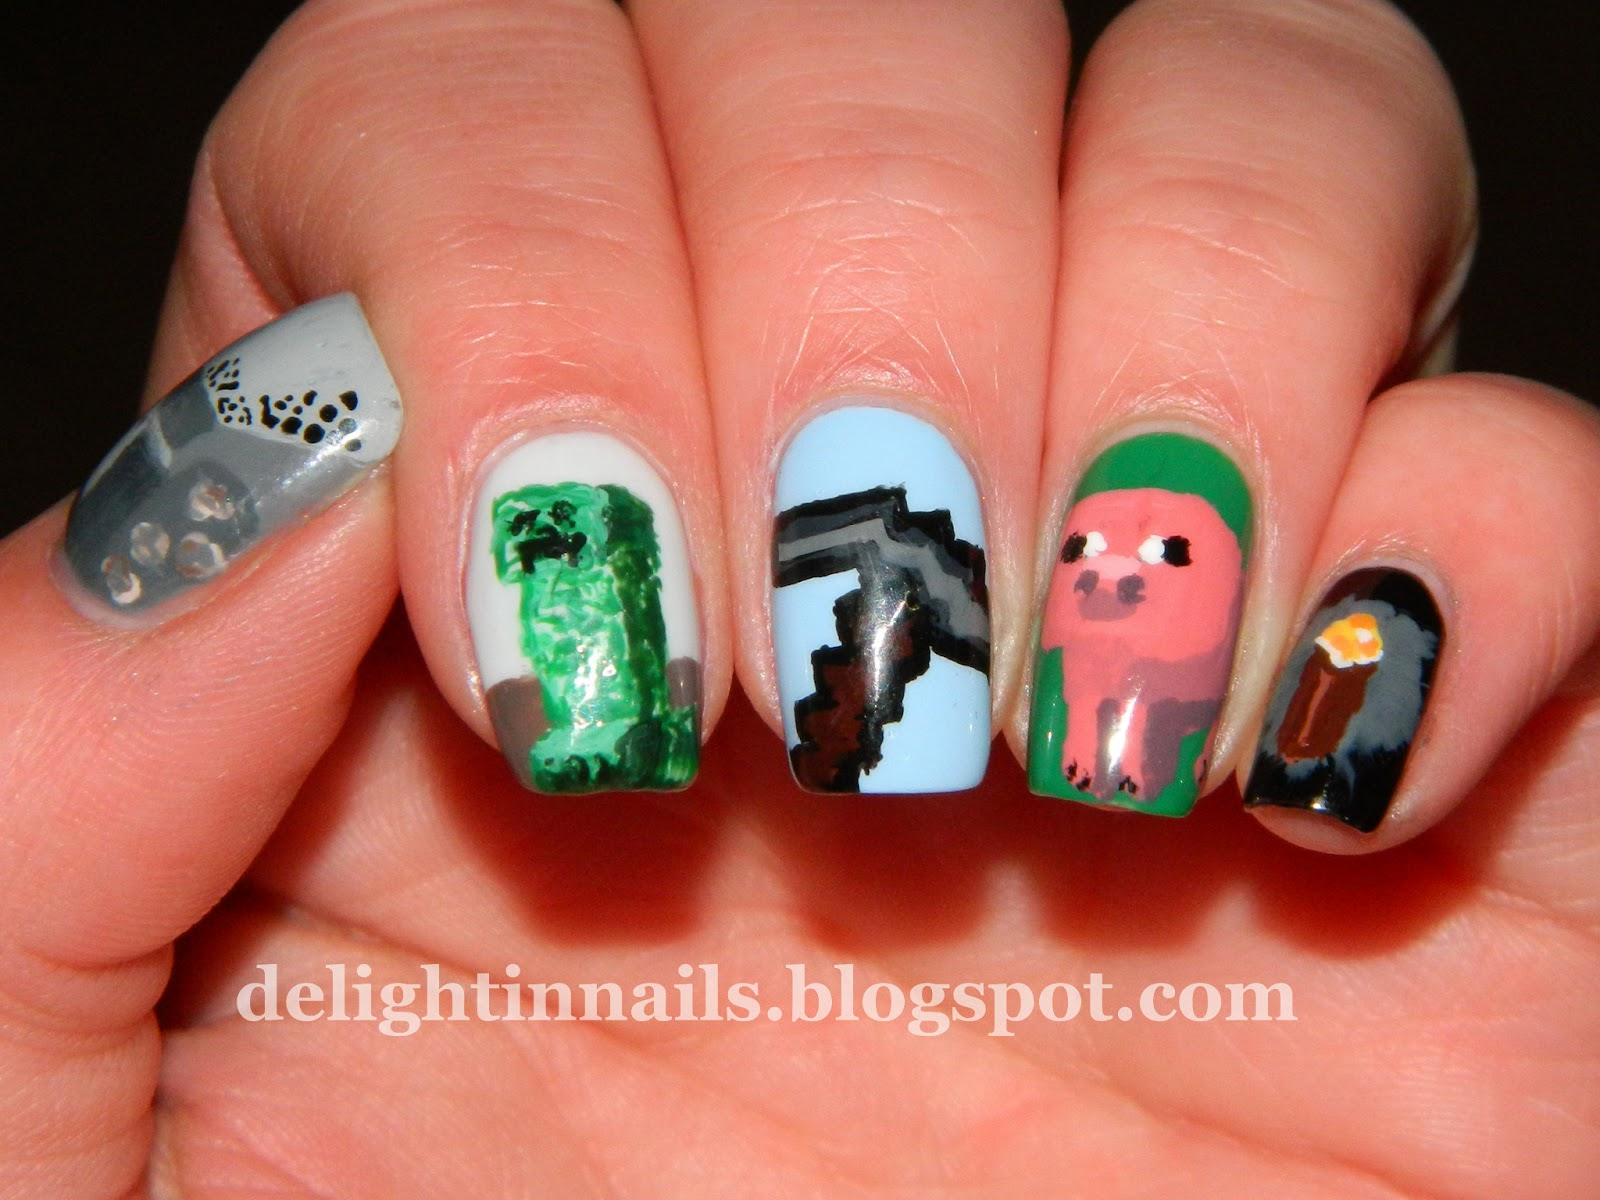 Delight In Nails: Laid-Back NEW31DC Day 24 - Inspired By A Game